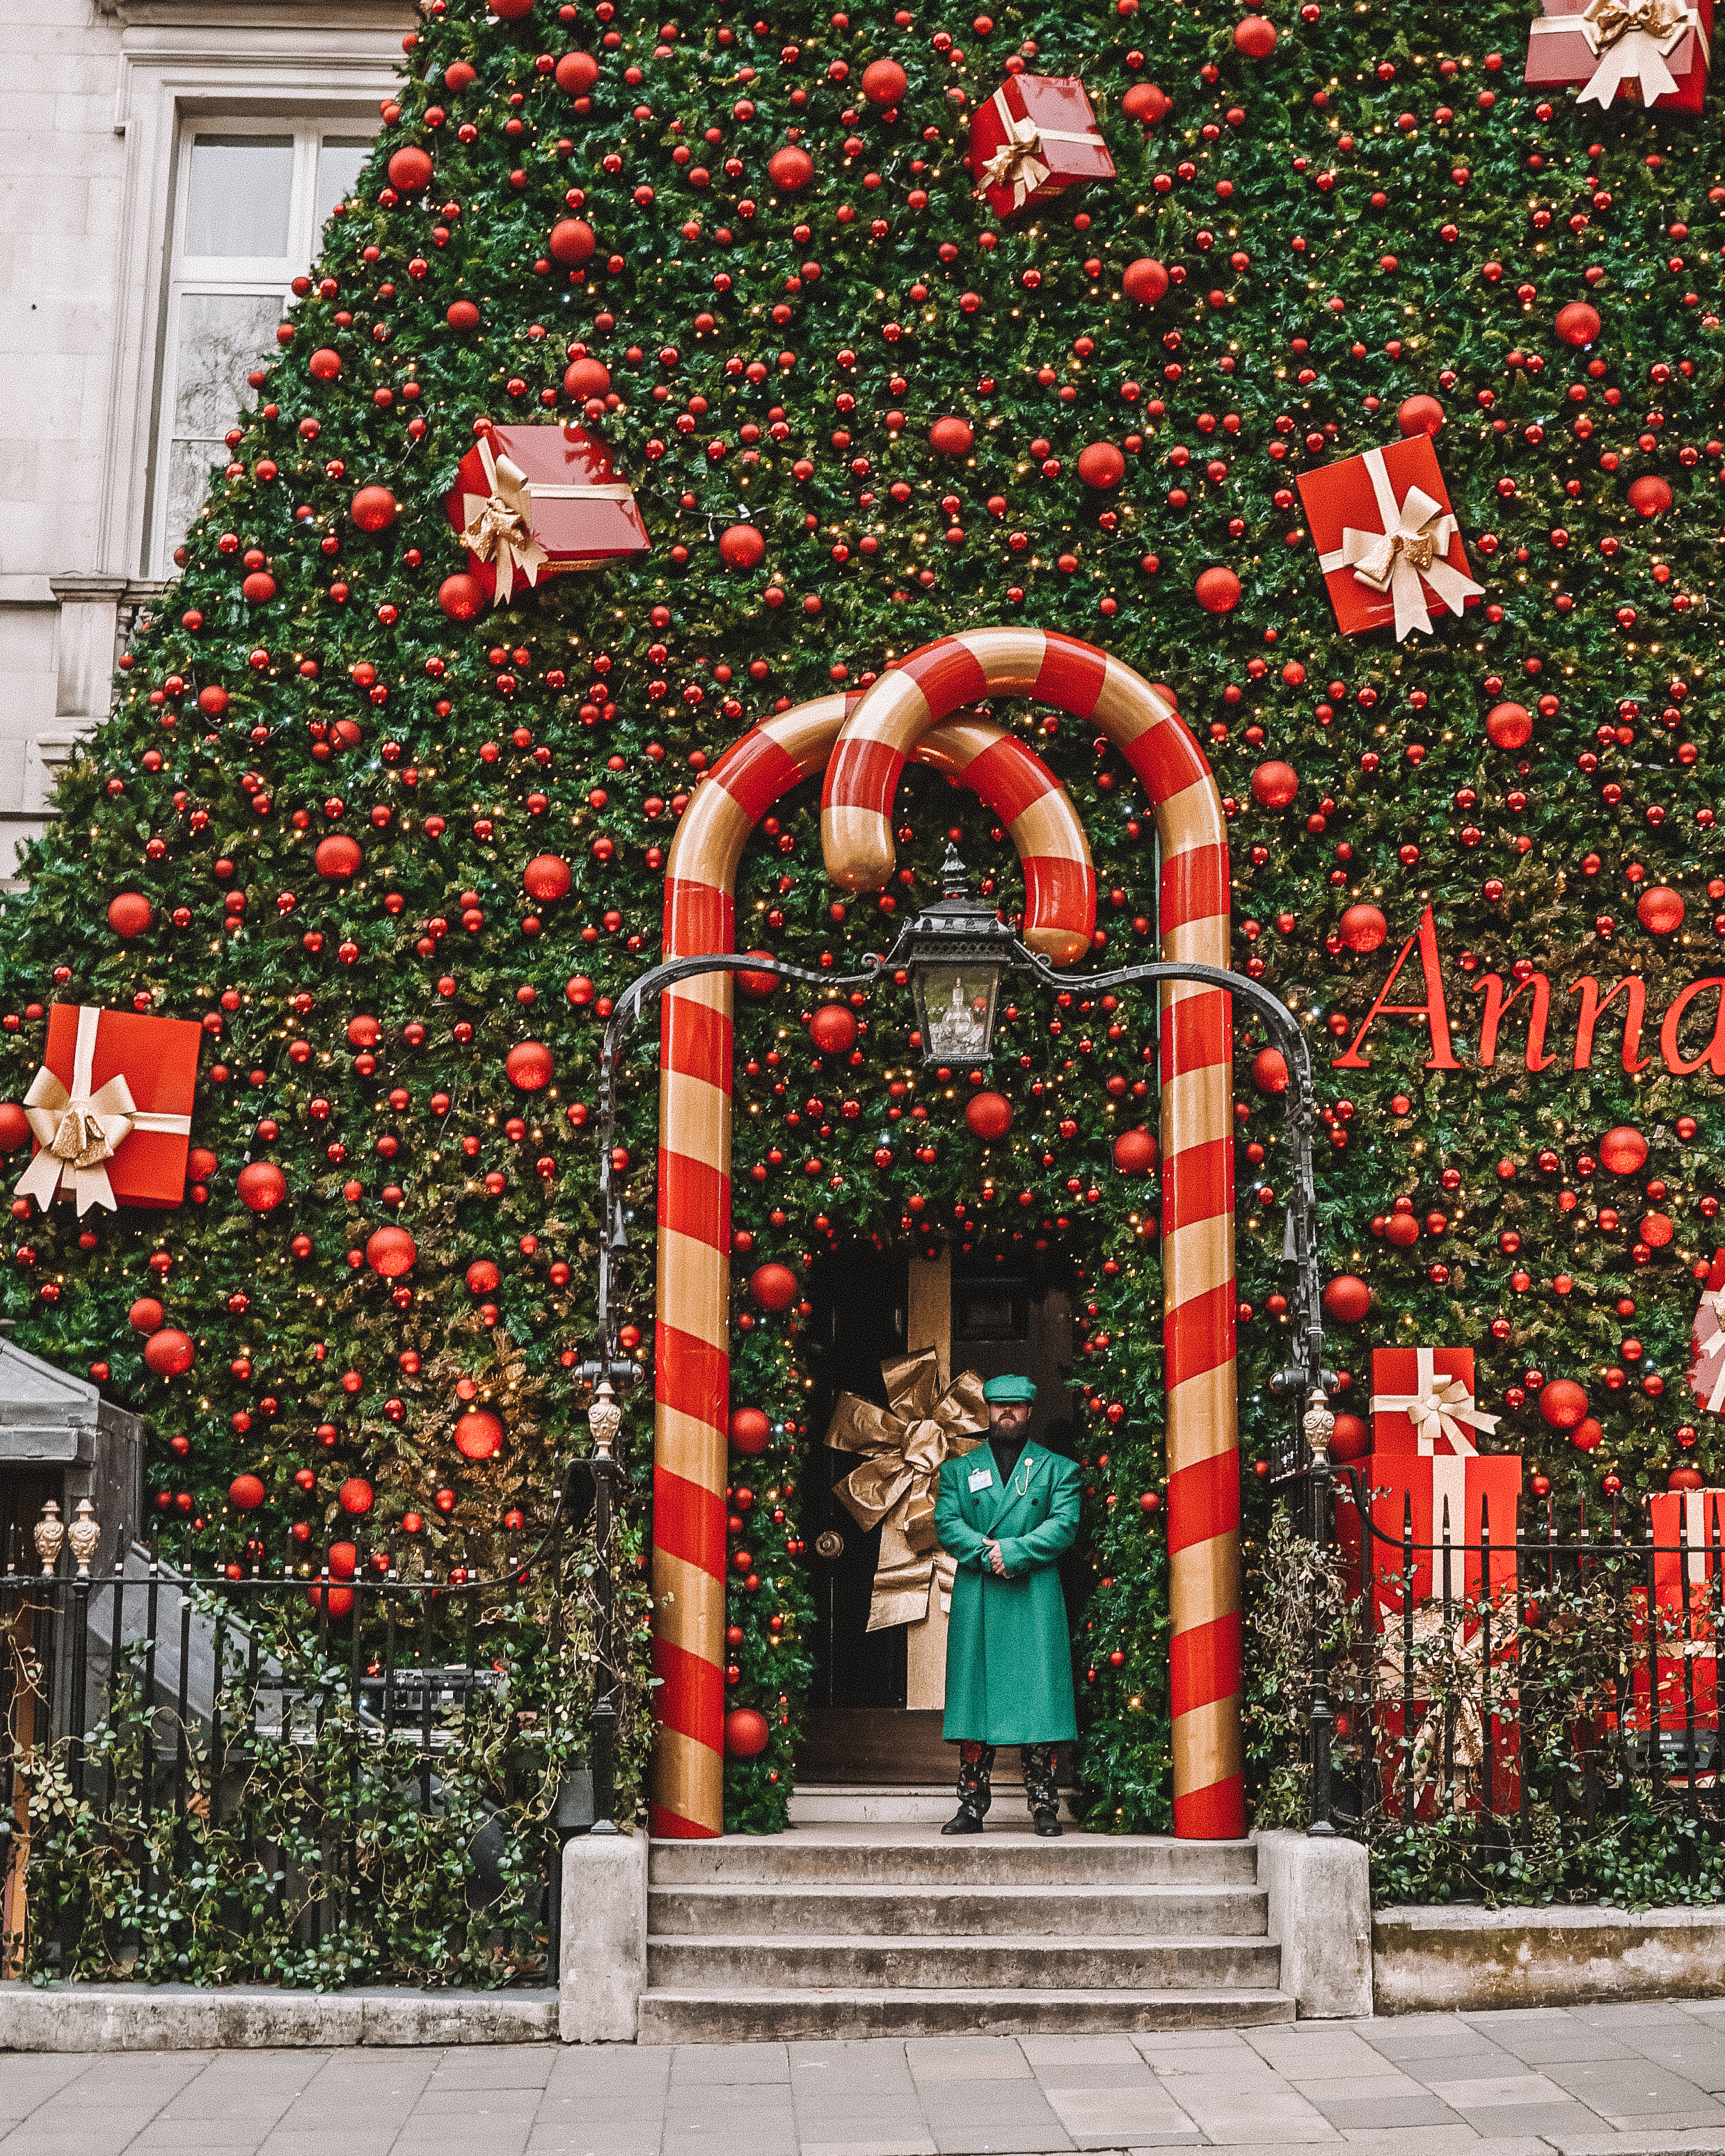 Christmas in London | London's Best Festive Displays | Annabel's